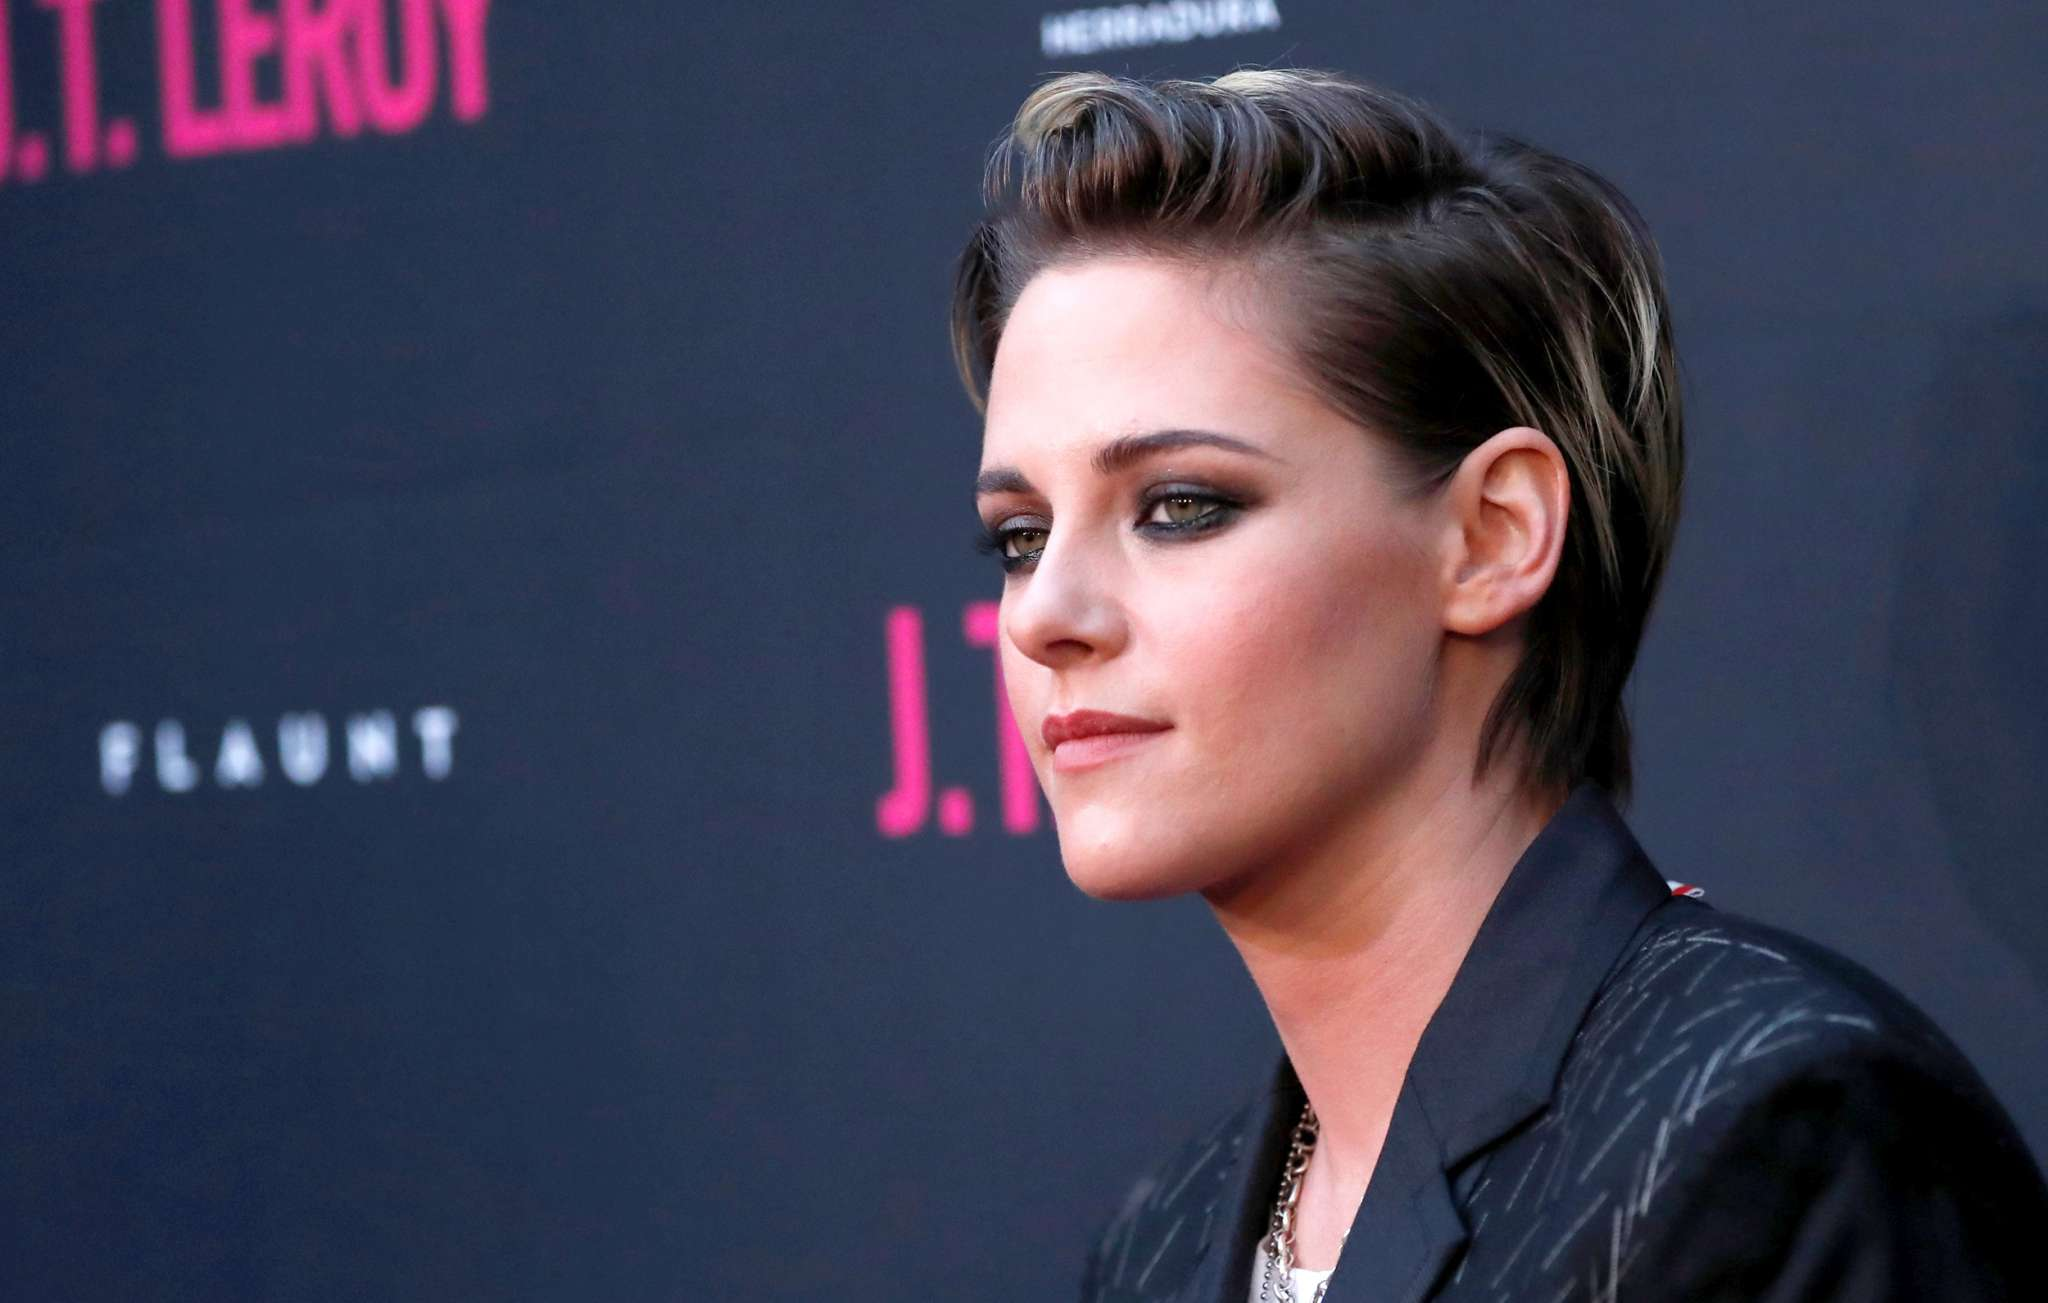 Kristen Stewart Explains Why She Came Out After Twilight